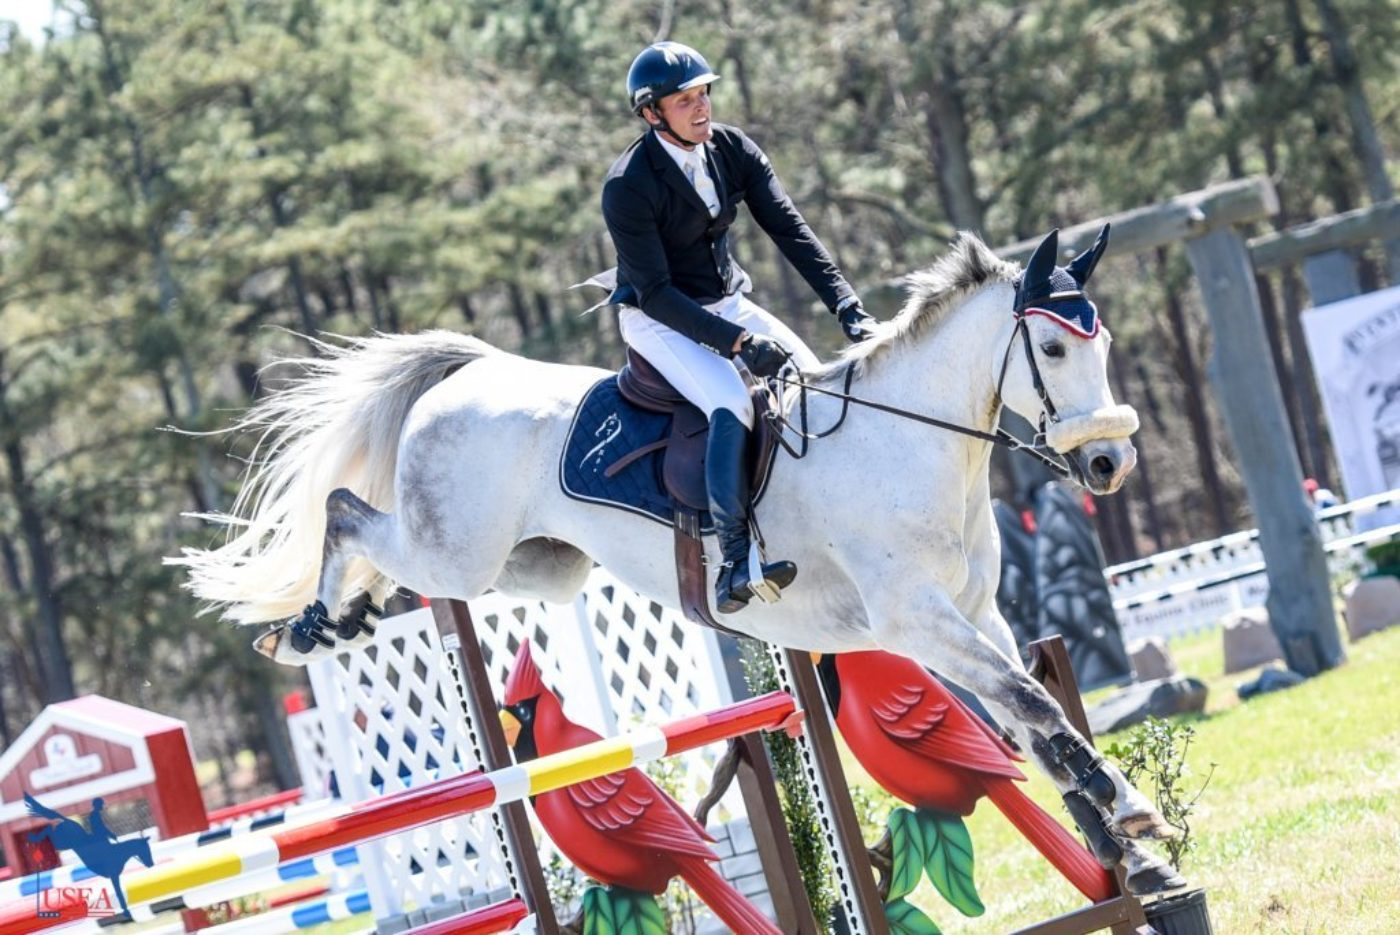 And the white tail award goes to Almanac! USEA/Leslie Mintz Photo.